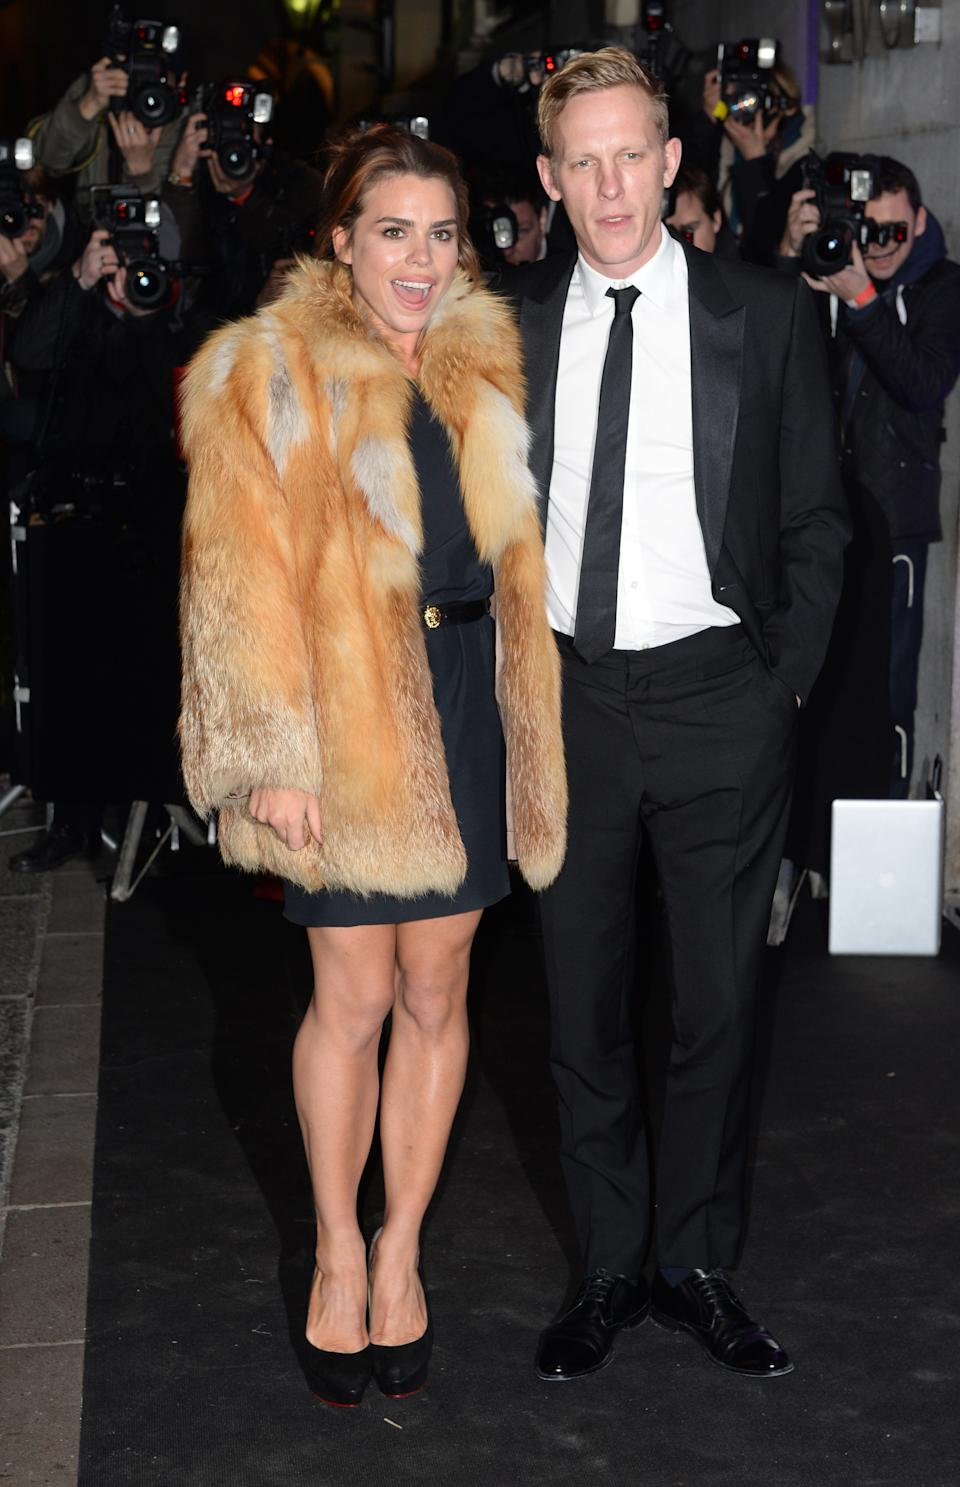 Billie Piper and Laurence Fox arriving at the Evening Standard Theatre Awards 2013, The Savoy Hotel, London.